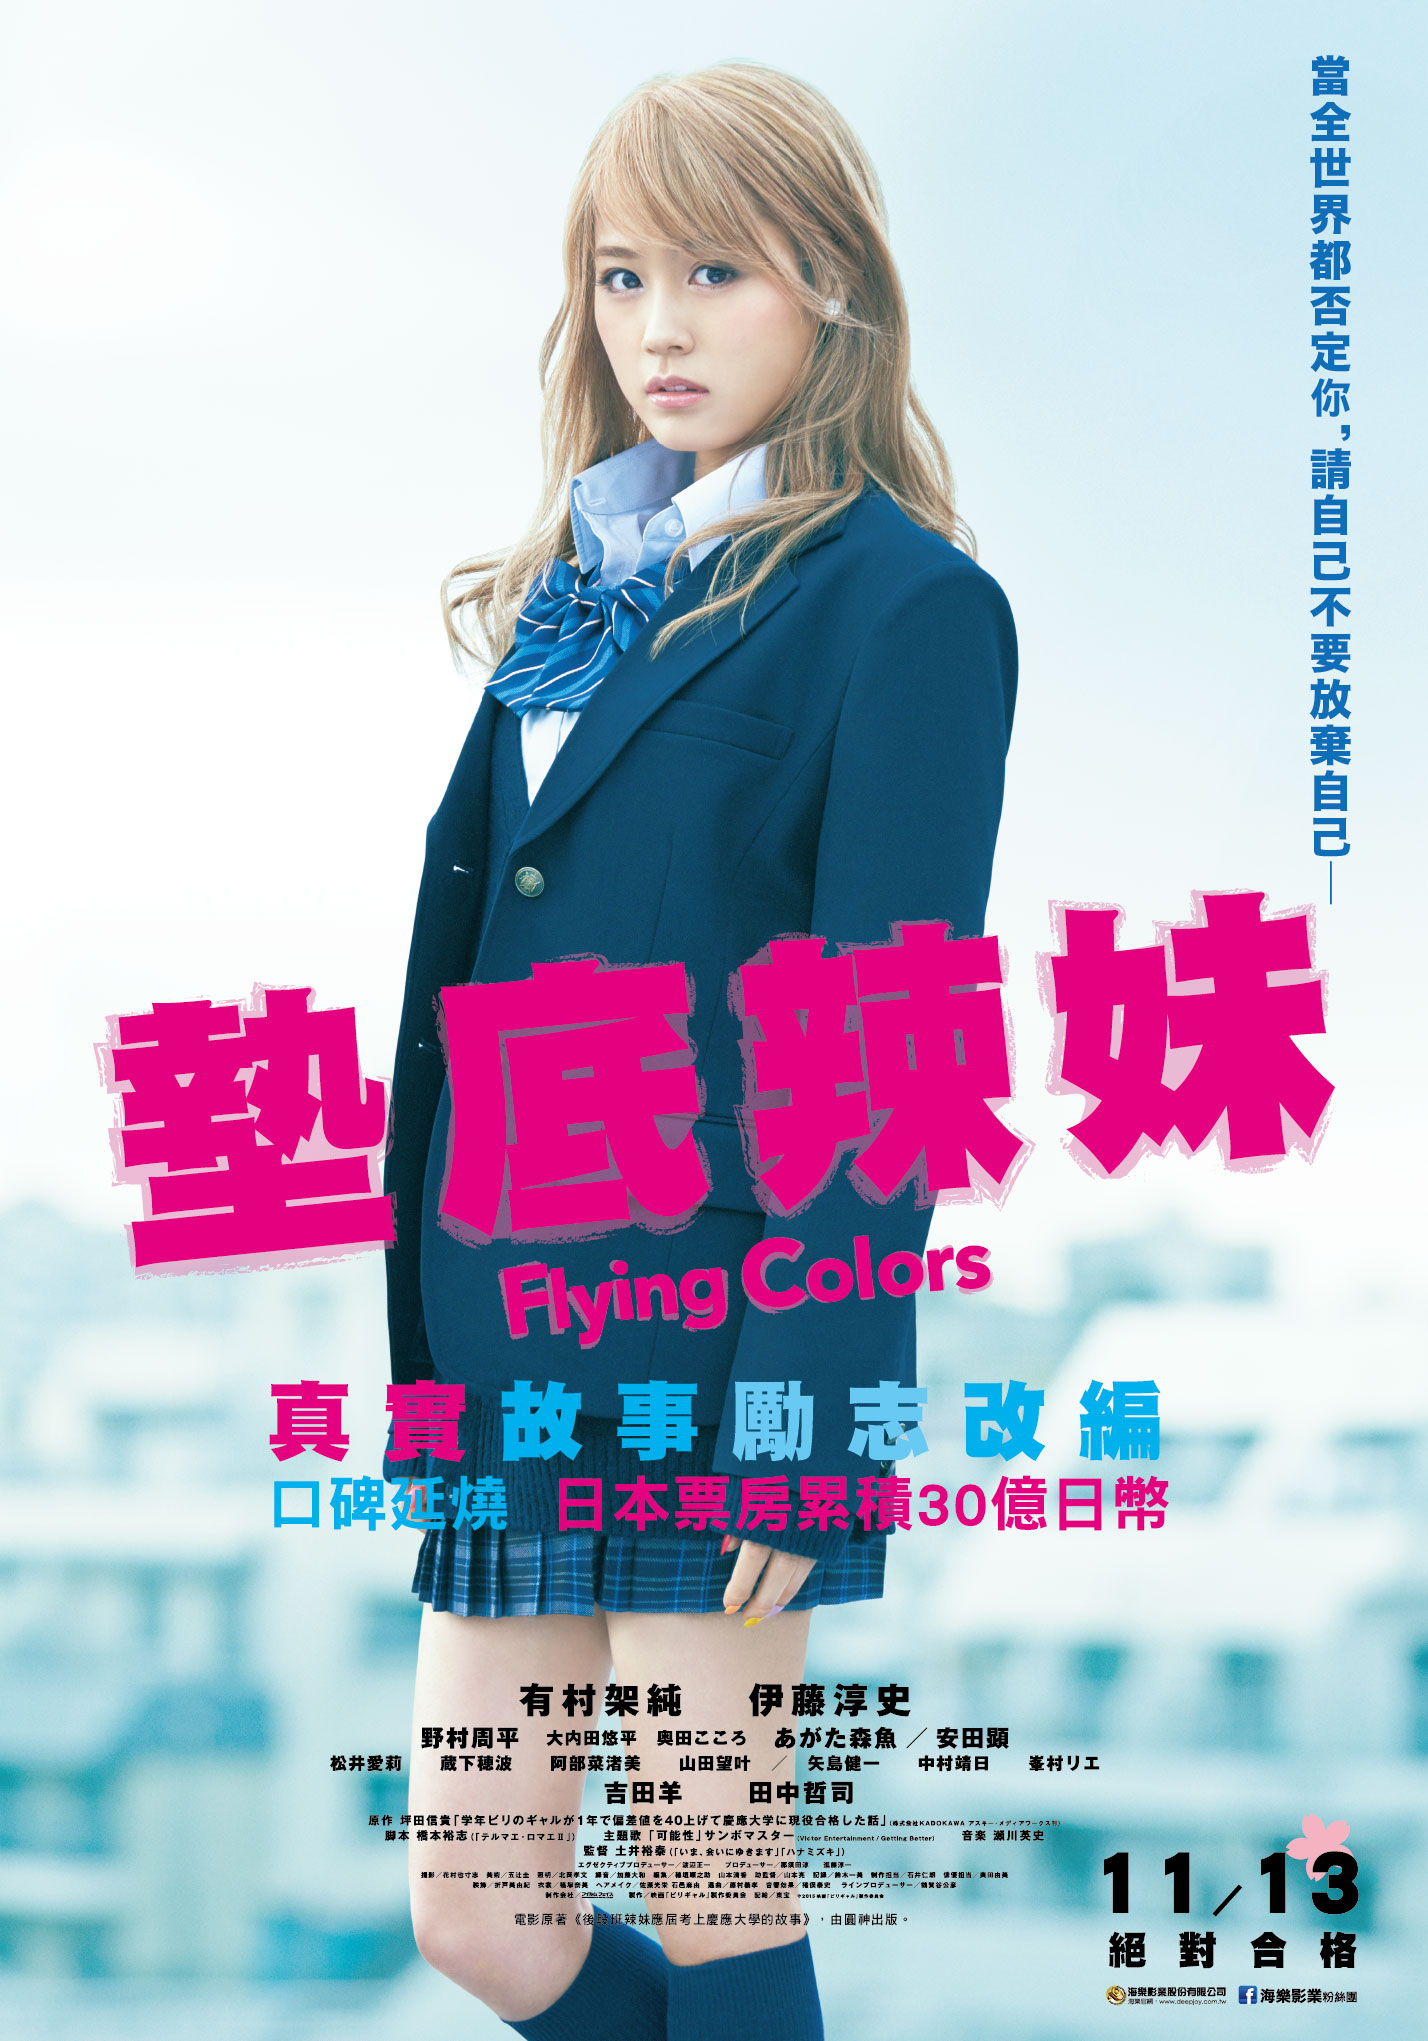 flying colors movie visual